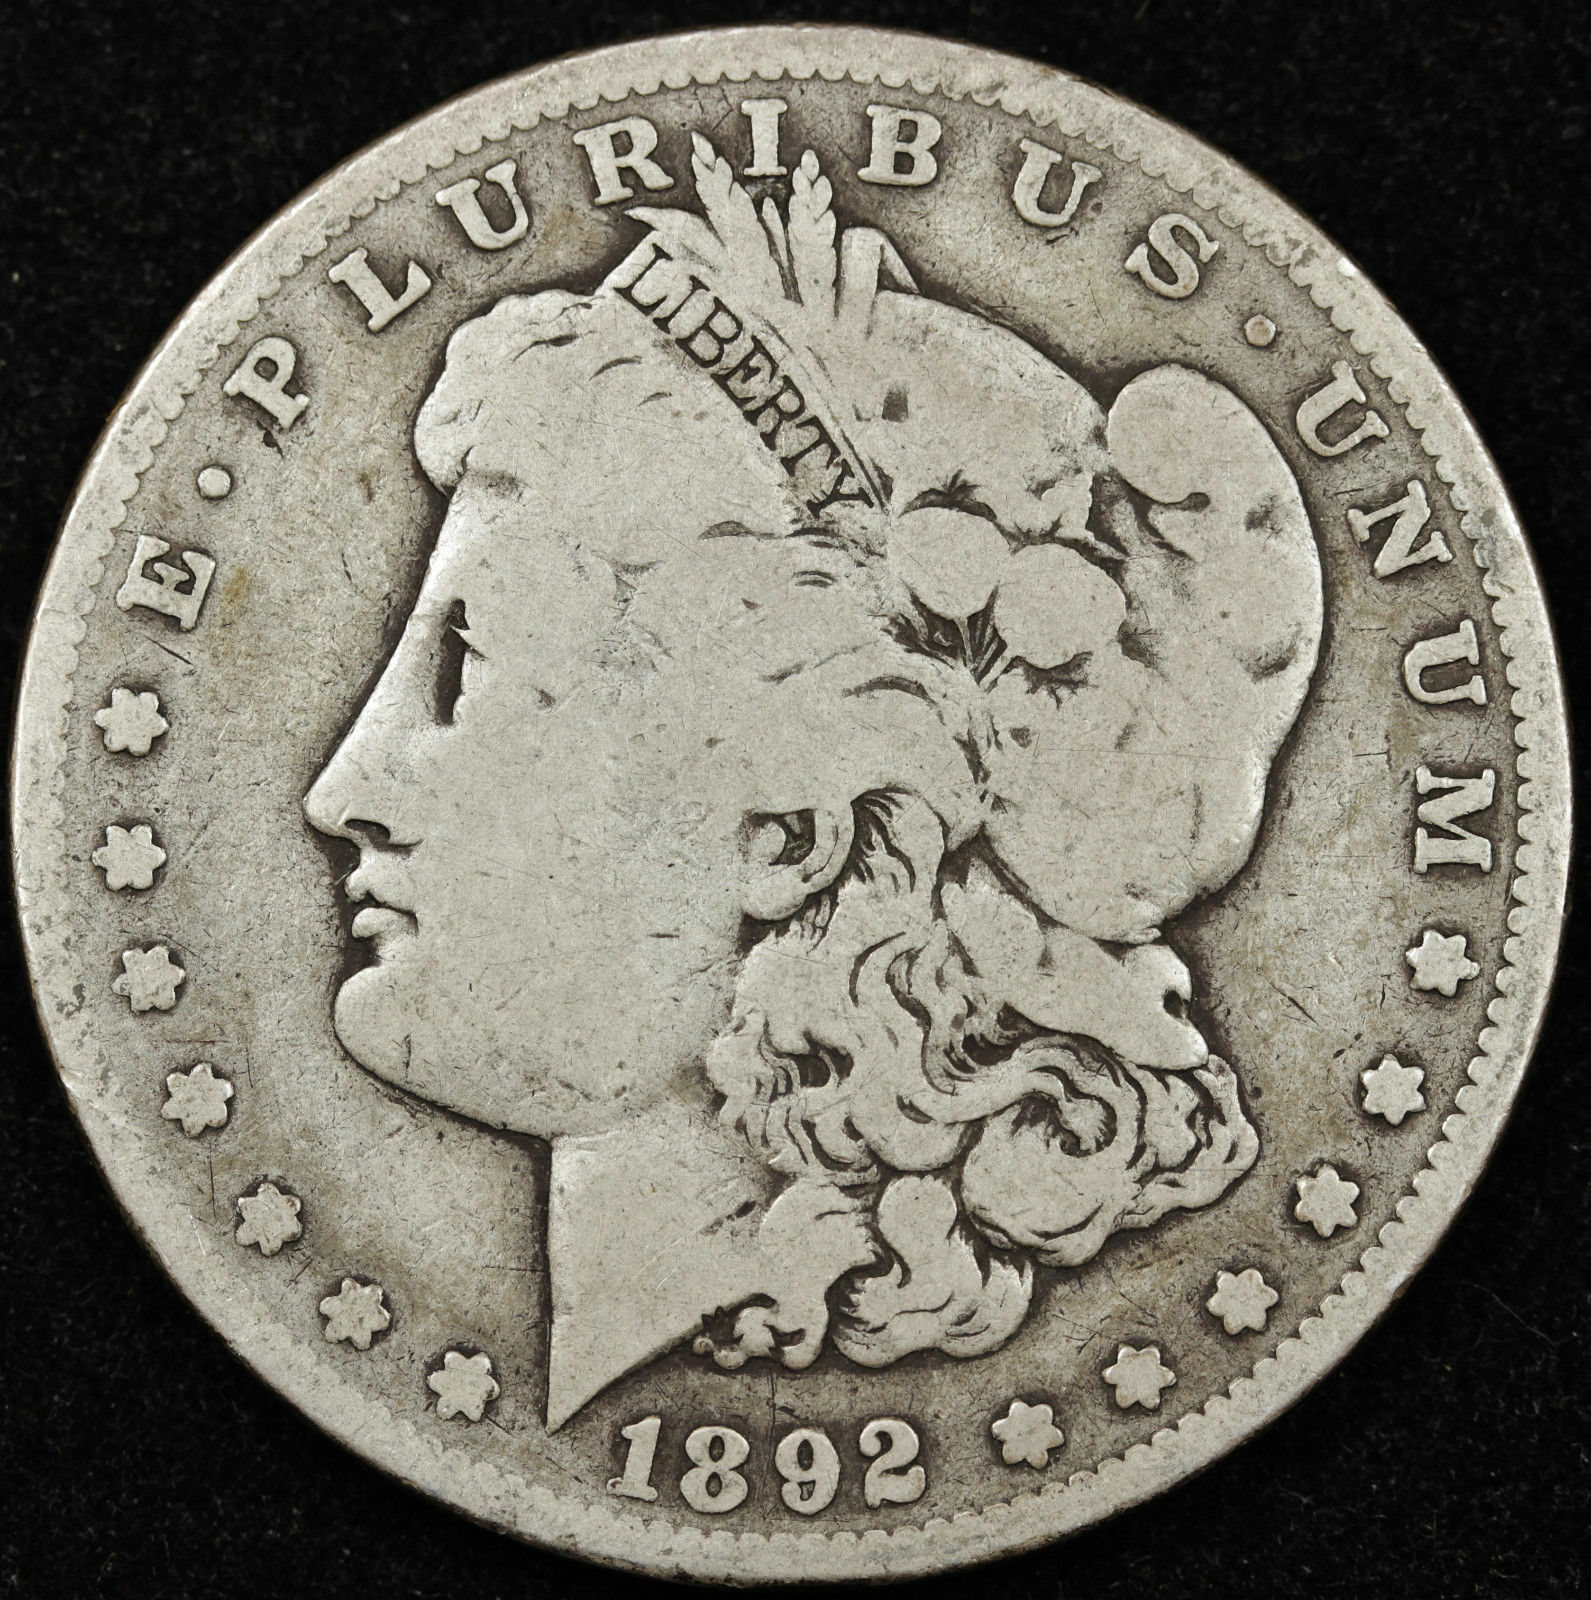 When was the last silver dollar minted?